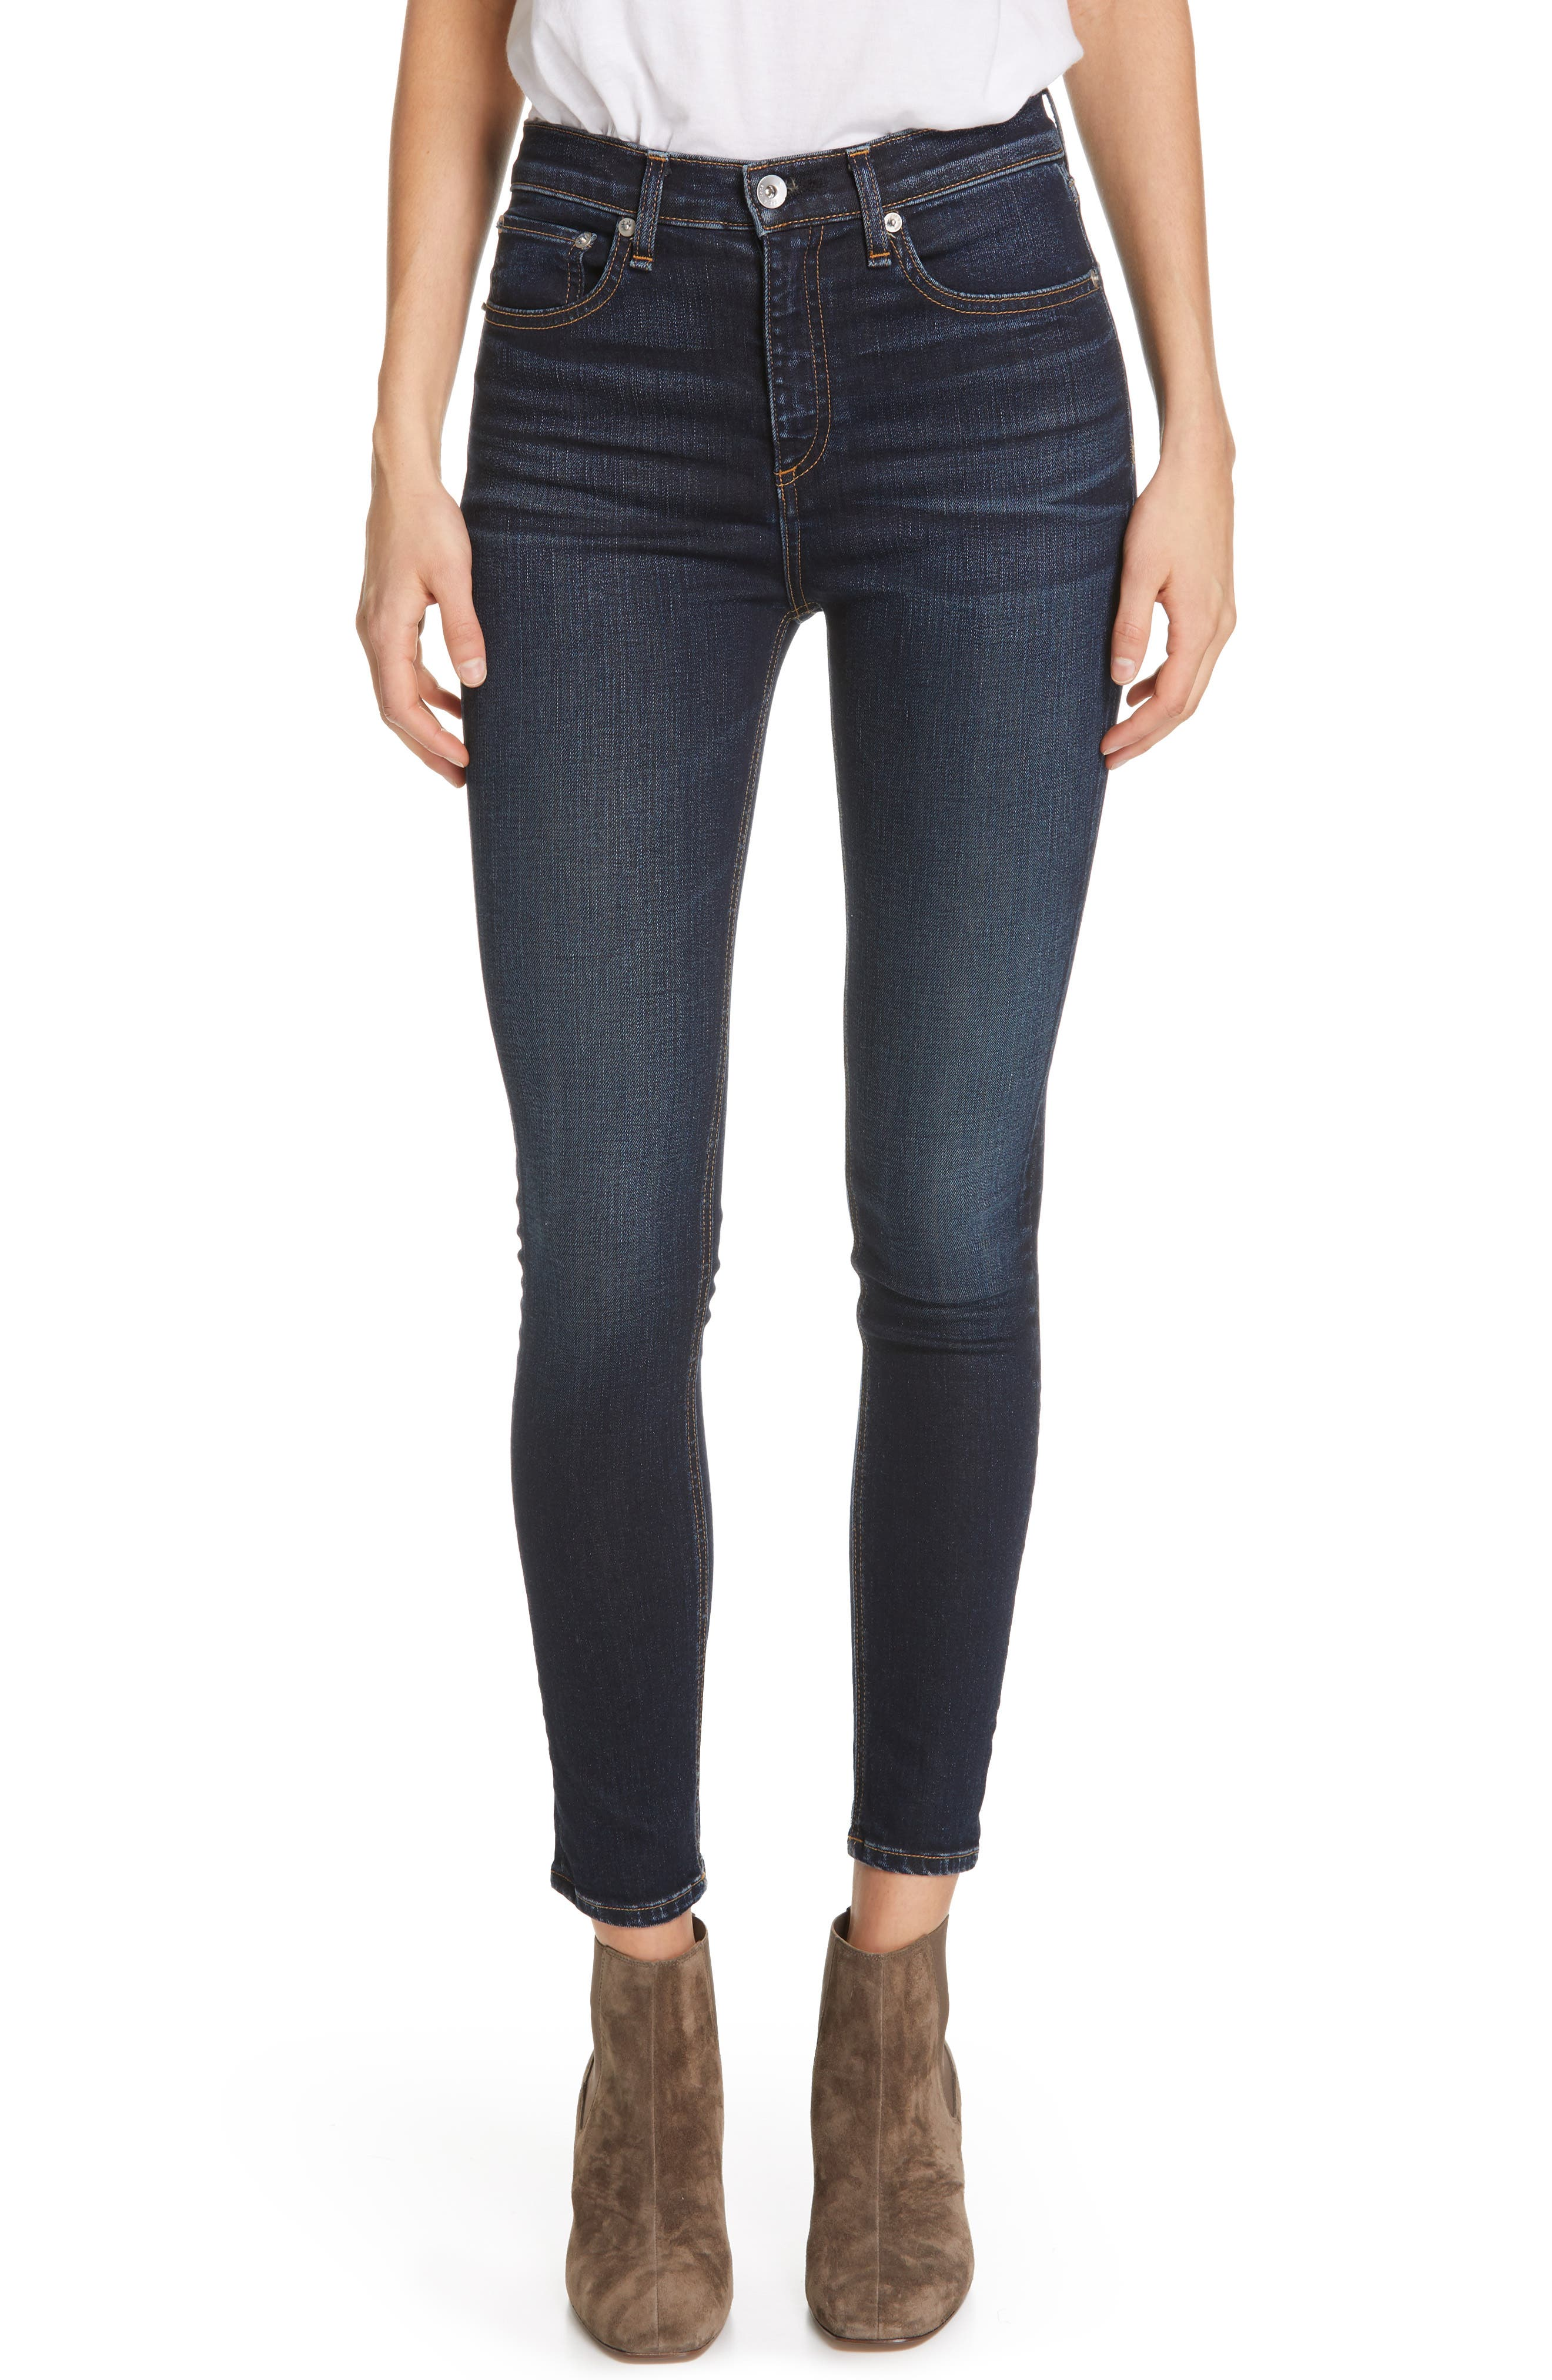 JEAN High Waist Ankle Skinny Jeans,                             Main thumbnail 1, color,                             RIVERDALE